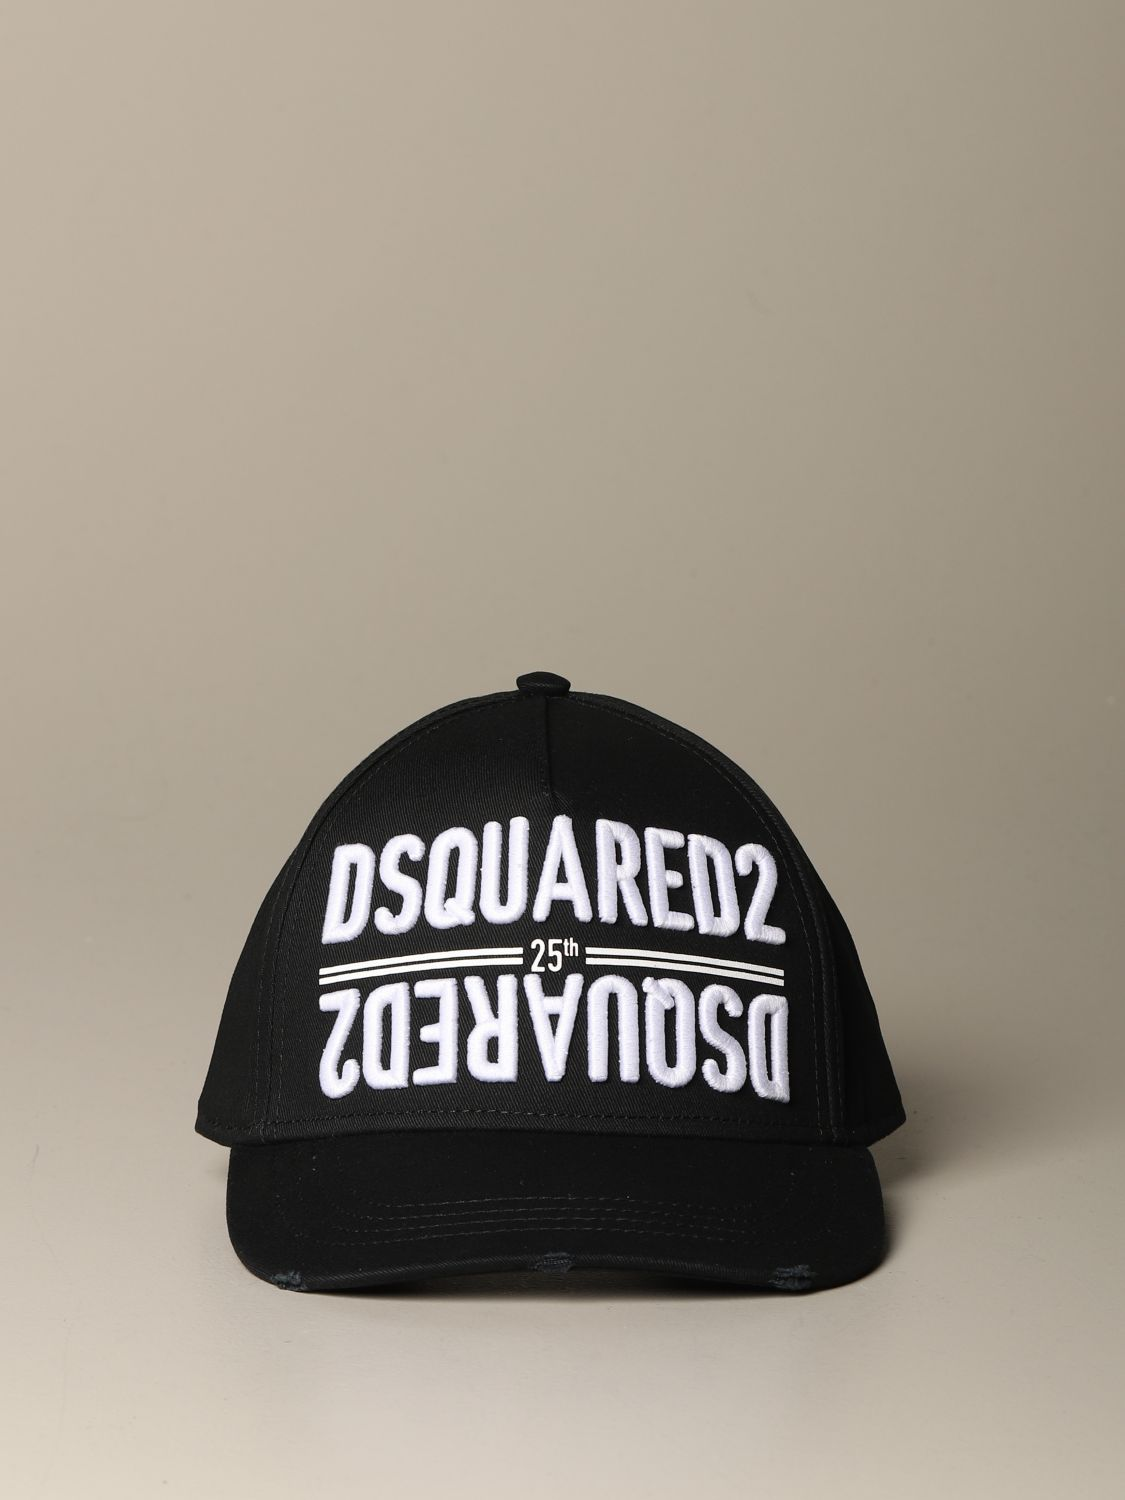 Hut Dsquared2: Hut herren Dsquared2 schwarz 2